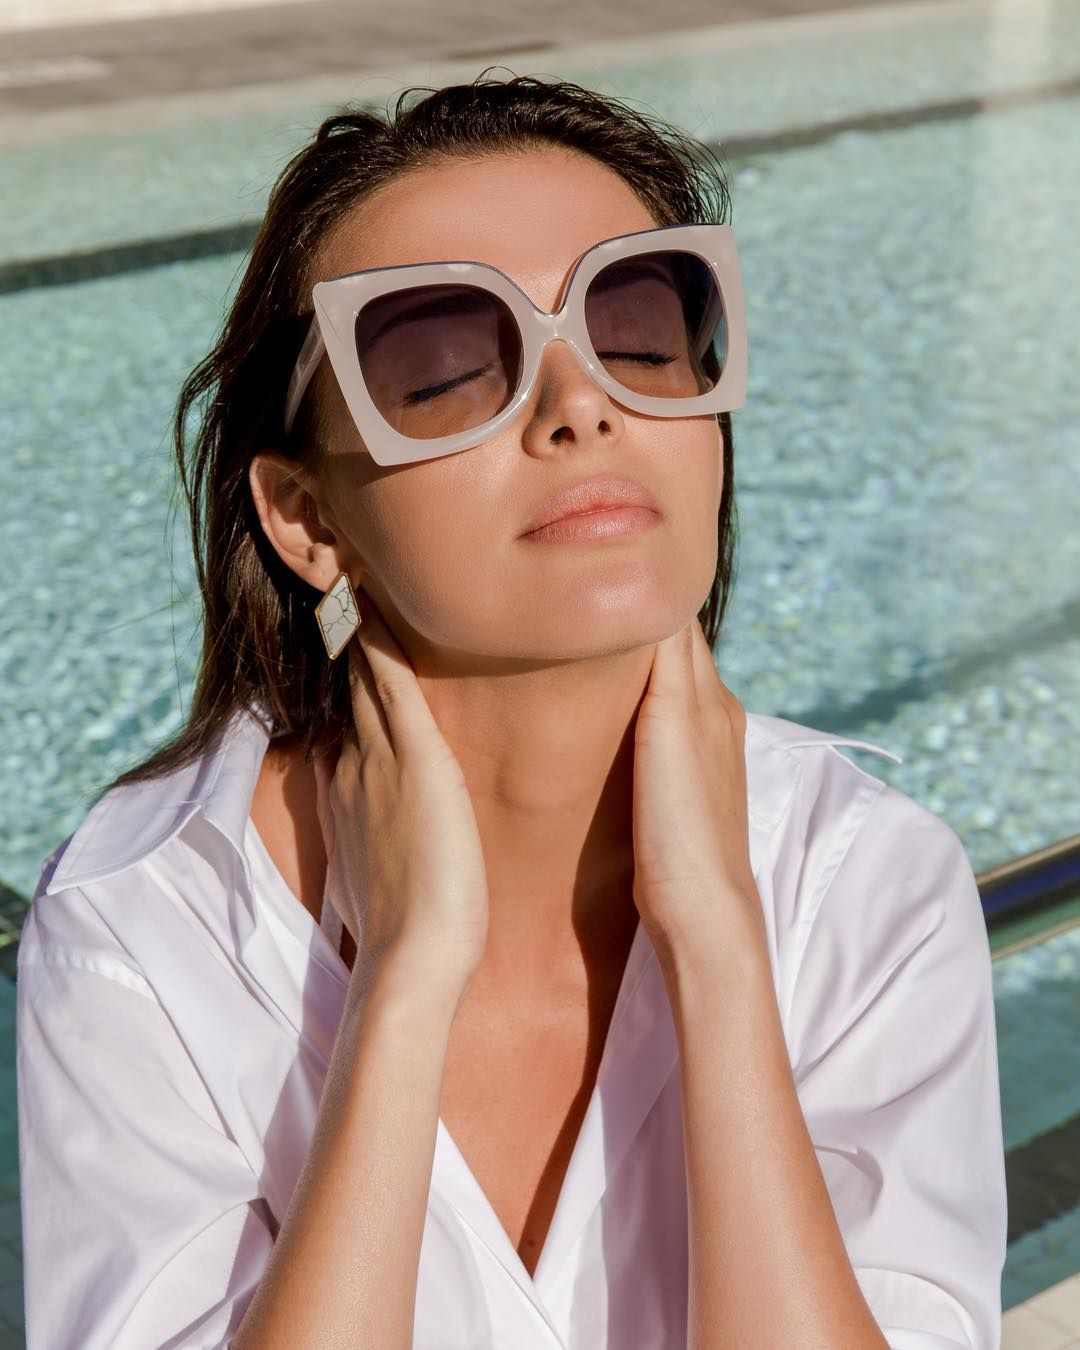 d2c3946ae1f ... Sunglasses by DESIGNER EYES. More than just a dream. Before you find  your poolside bliss